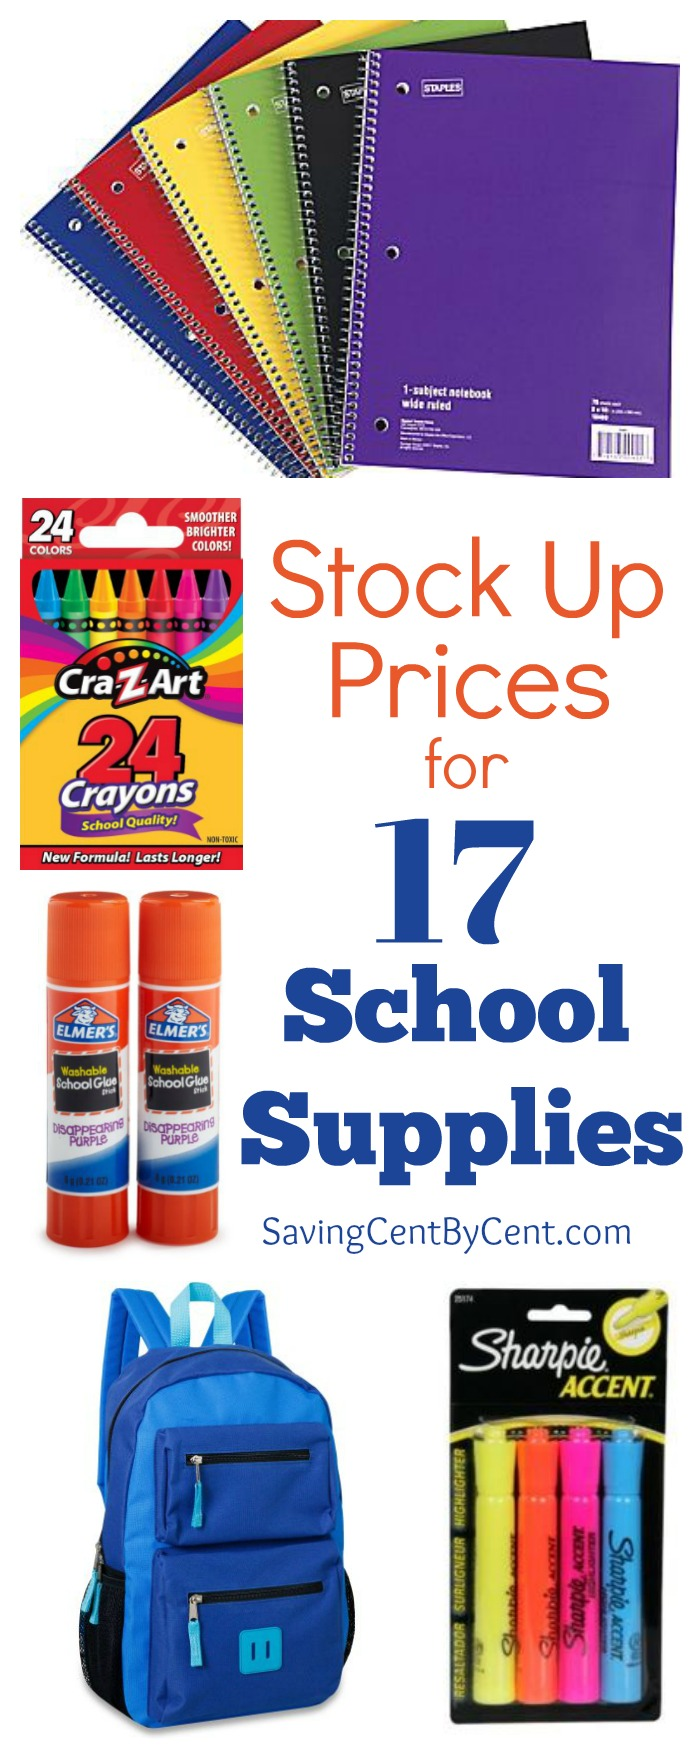 Stock up Prices for School Supplies